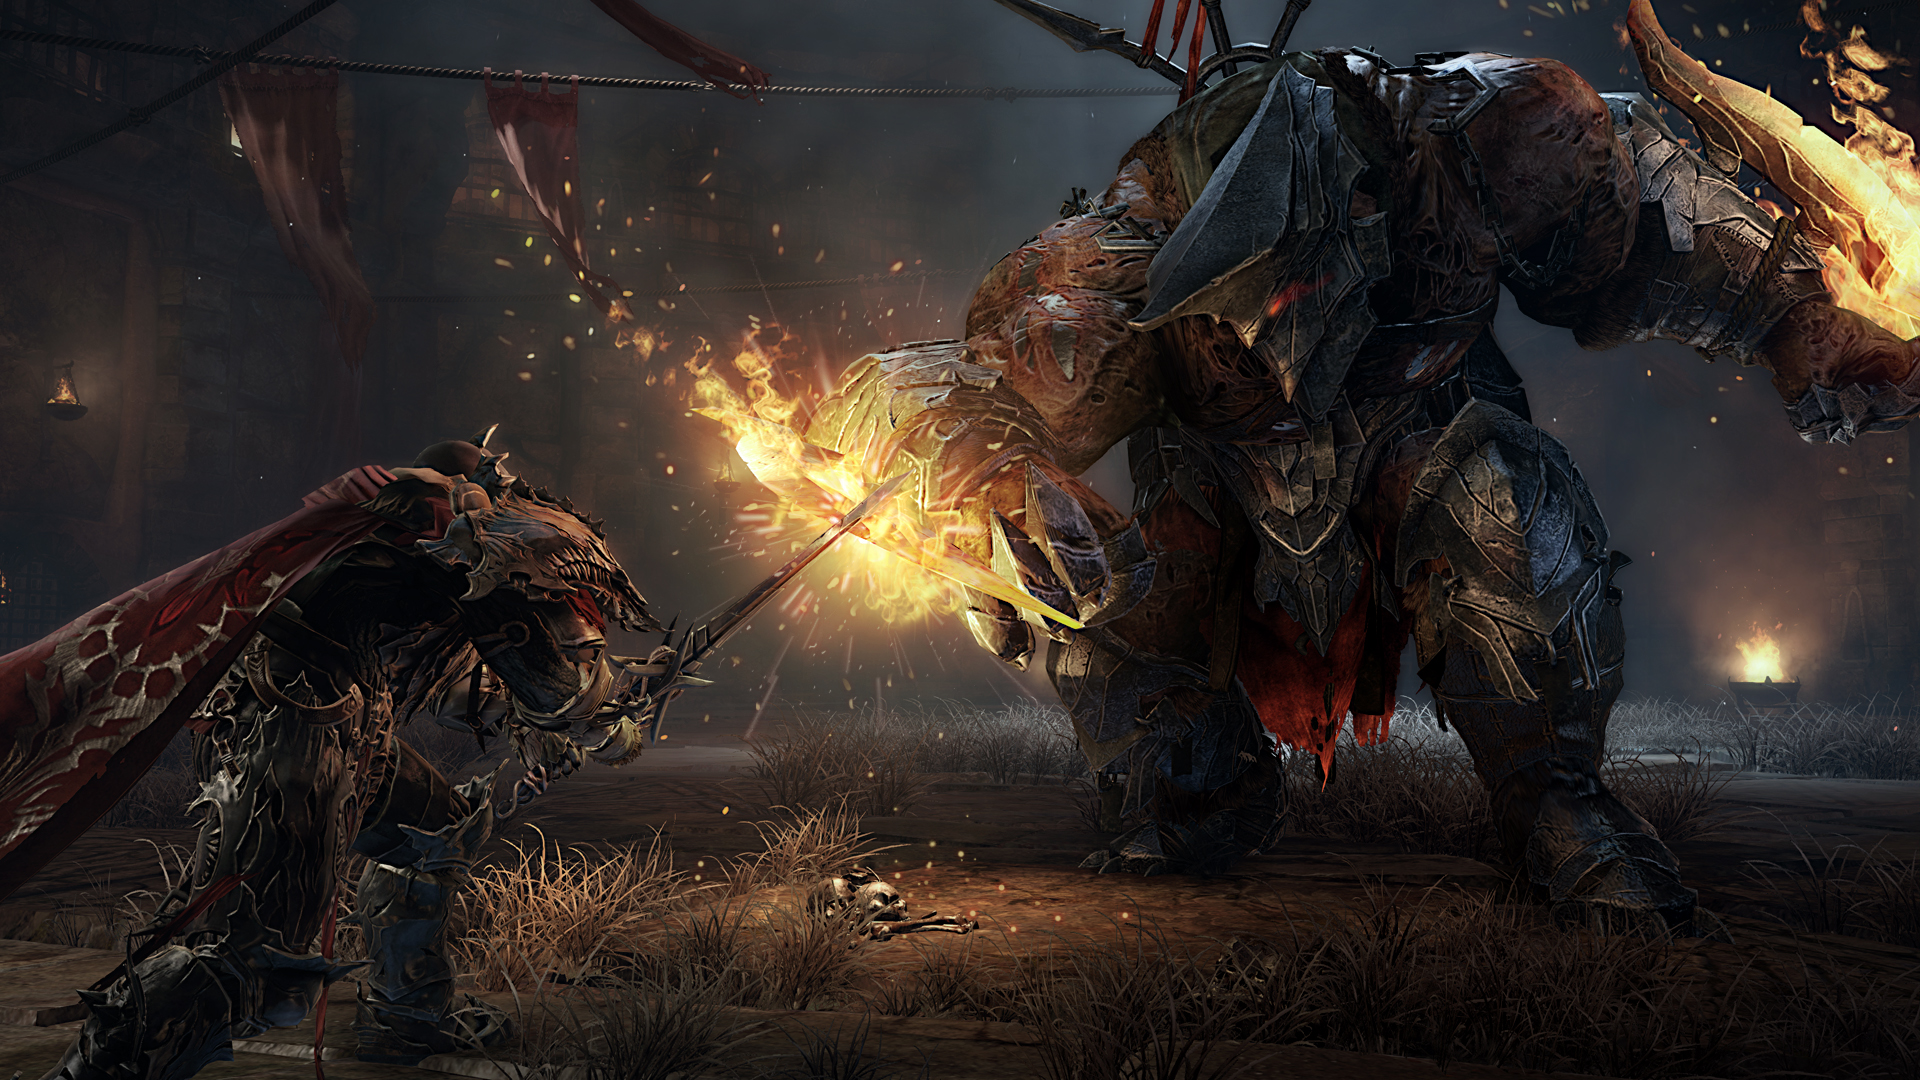 Lords of the Fallen launches Oct. 28 on PC, PS4 and Xbox One (update)